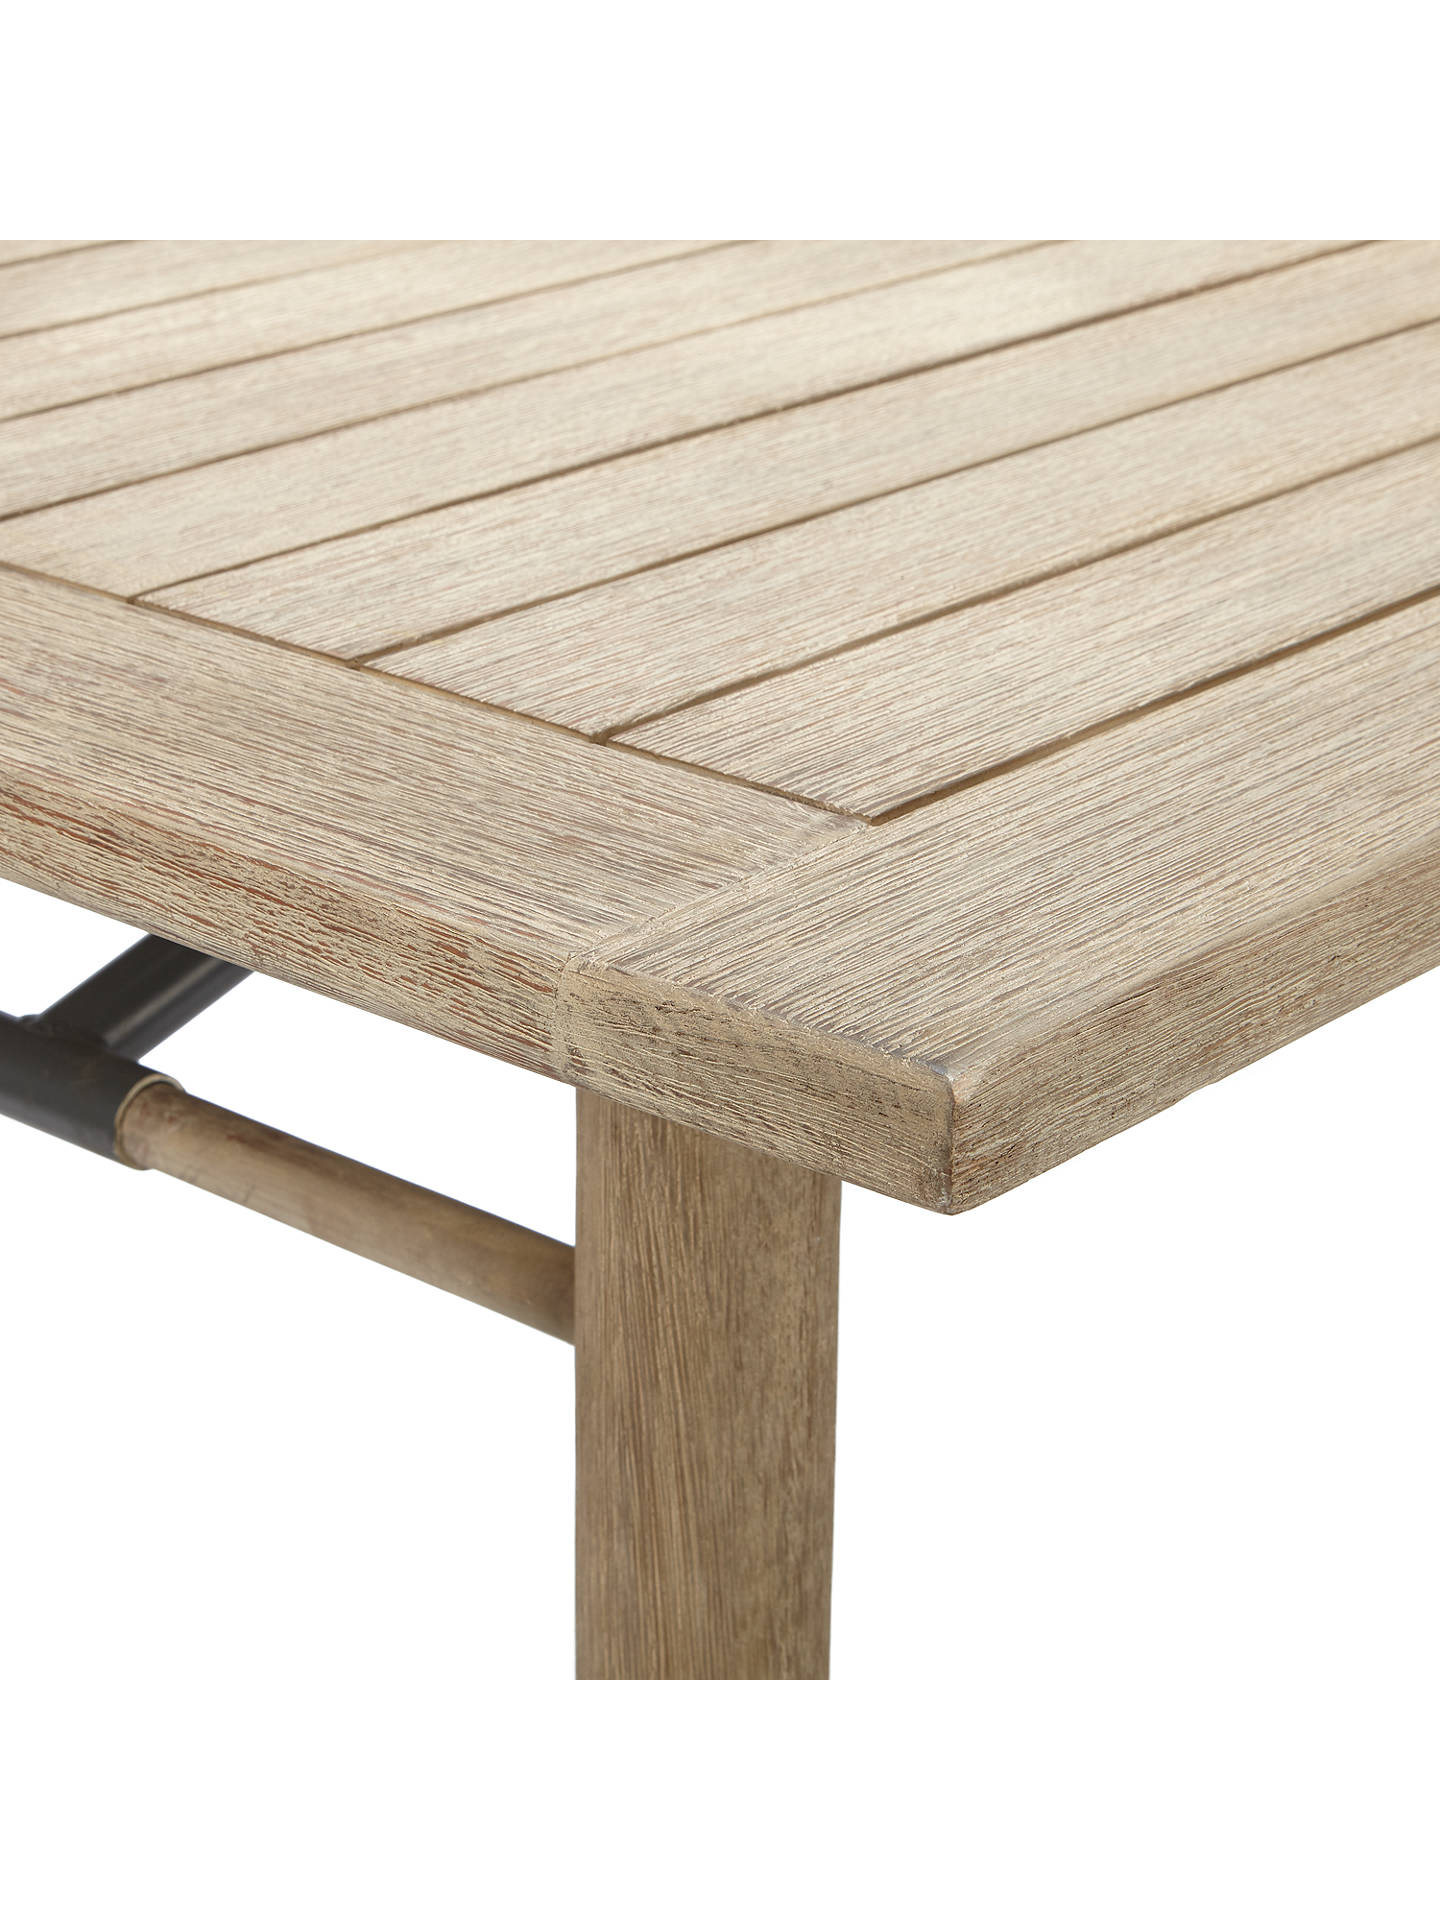 BuyJohn Lewis & Partners Eden 6-Seater Outdoor Dining Table, FSC-Certified (Eucalyptus), Salima Wash Online at johnlewis.com